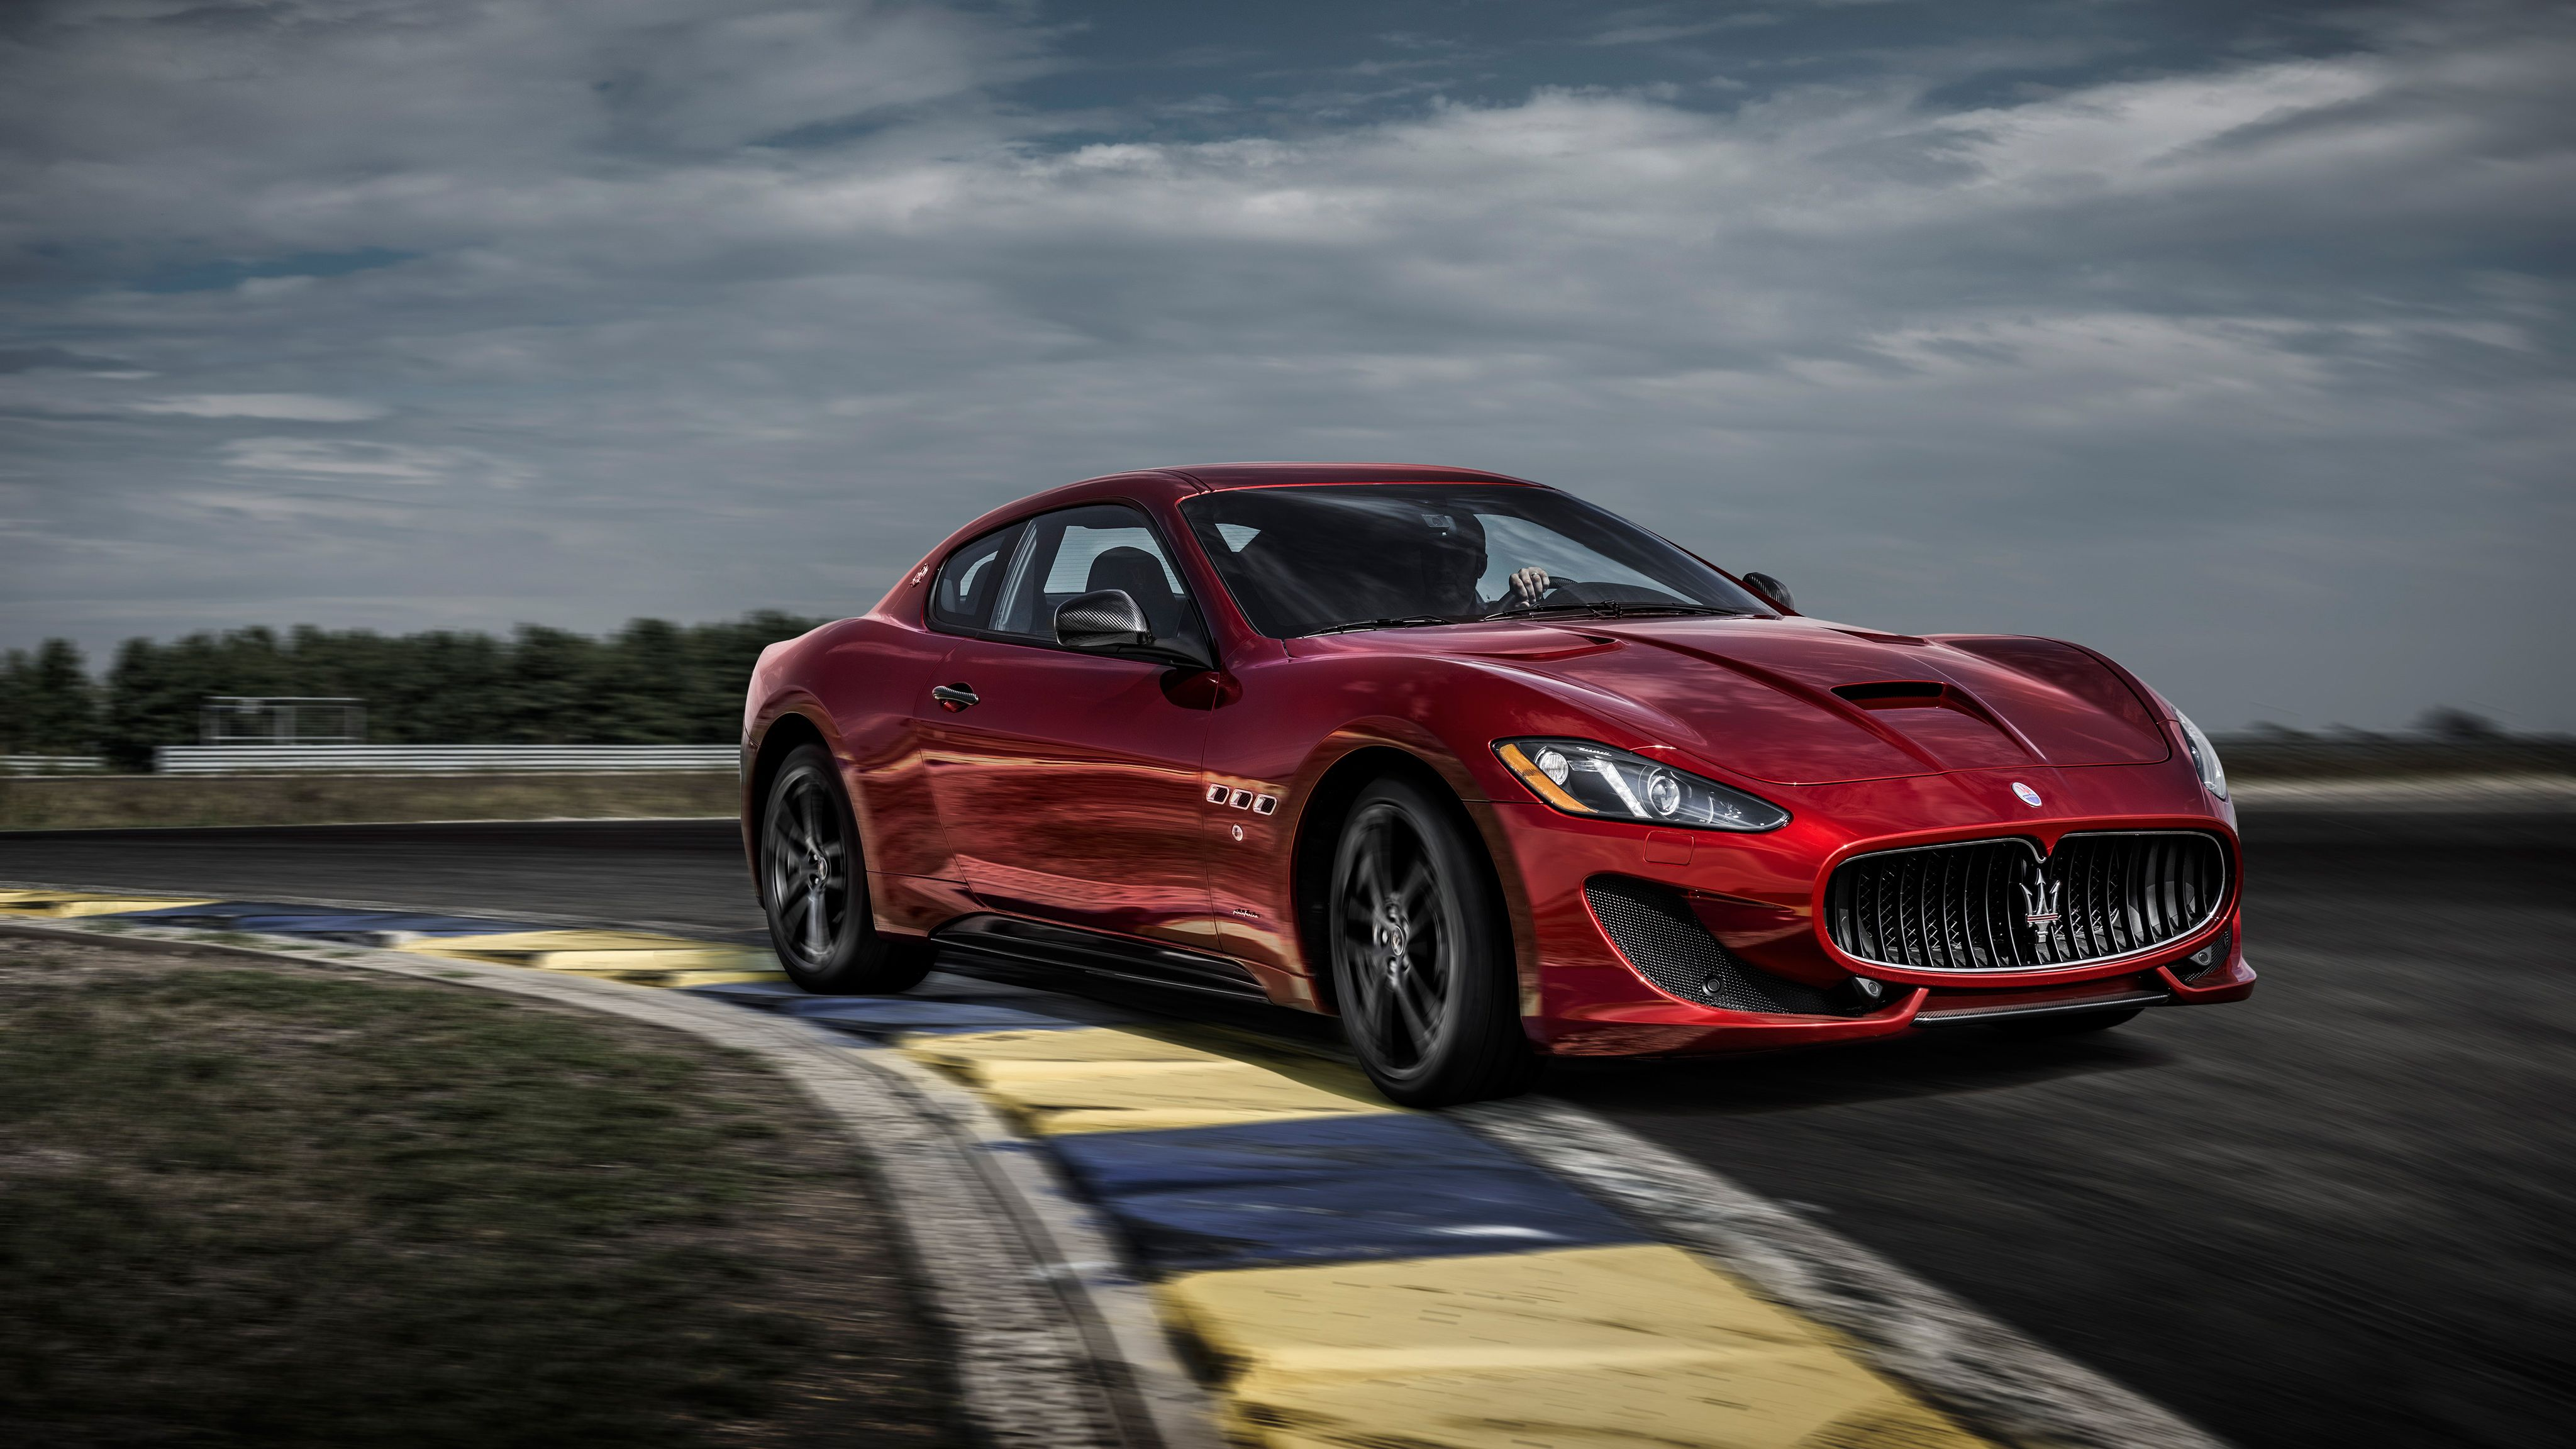 Maserati Granturismo Our Online Magazine Especially For Lovers Of